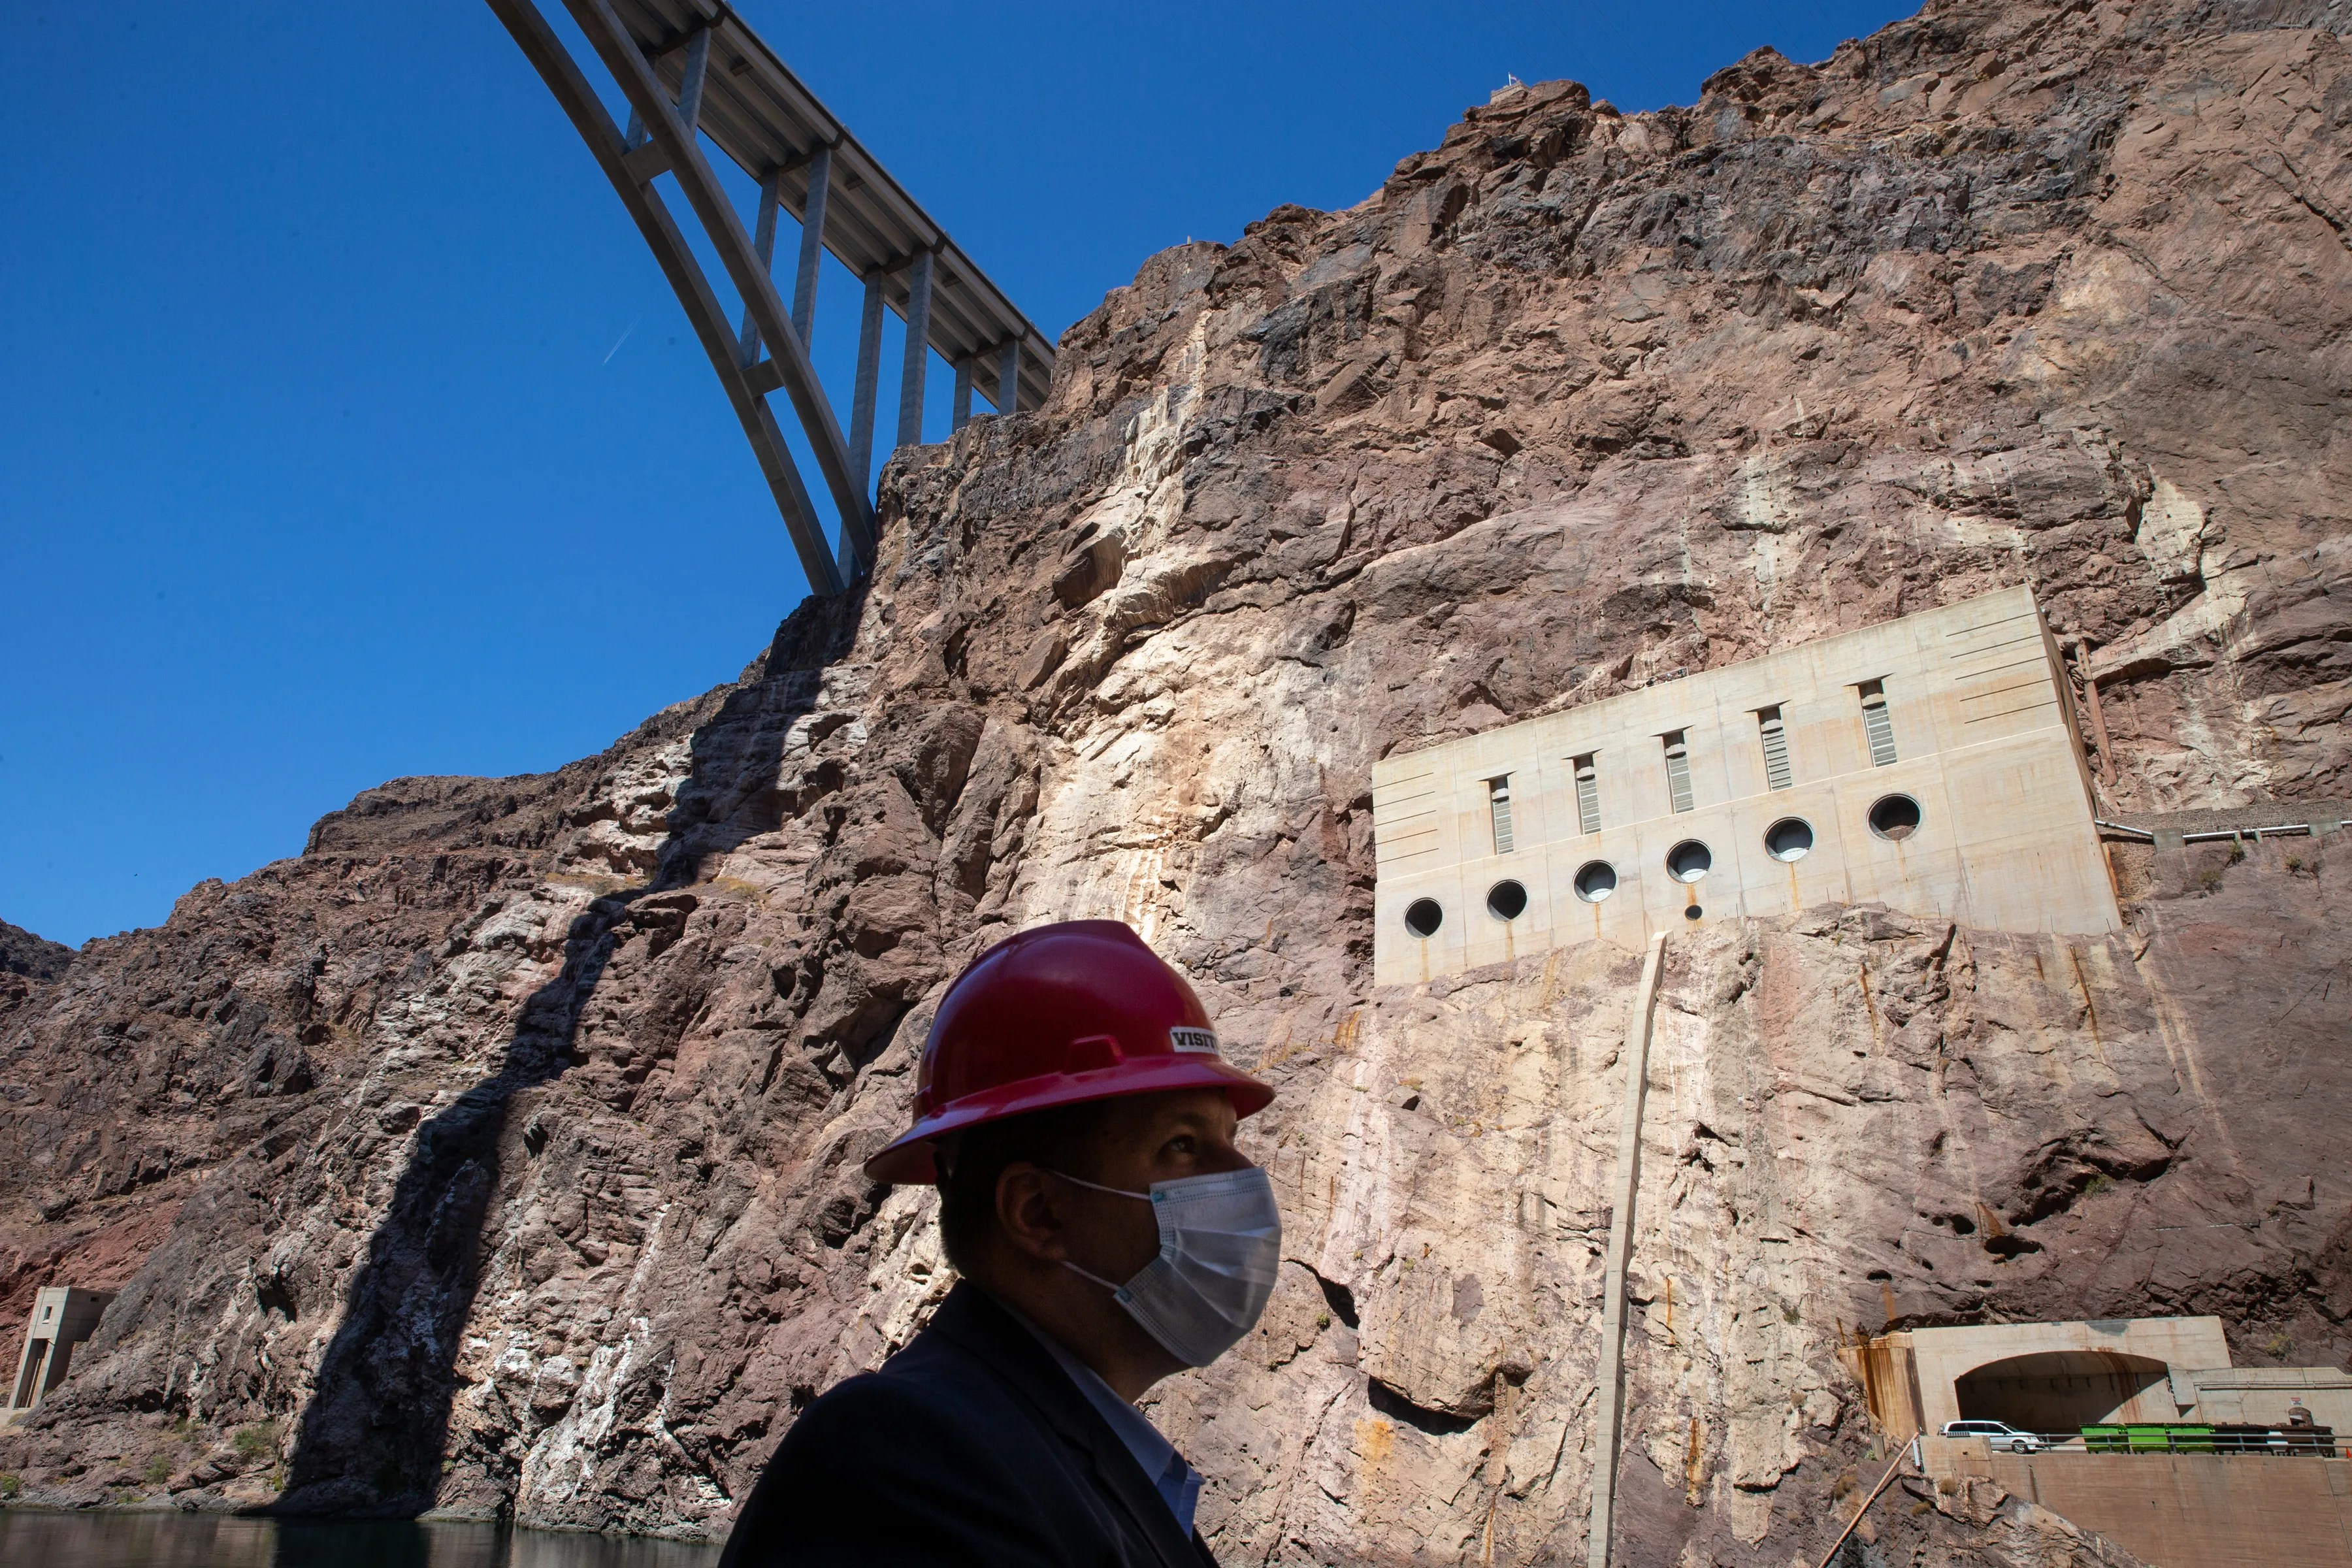 Mike Bernardo, of the federal Bureau of Reclamation, on the ramp at Hoover Dam on May 11, 2021.